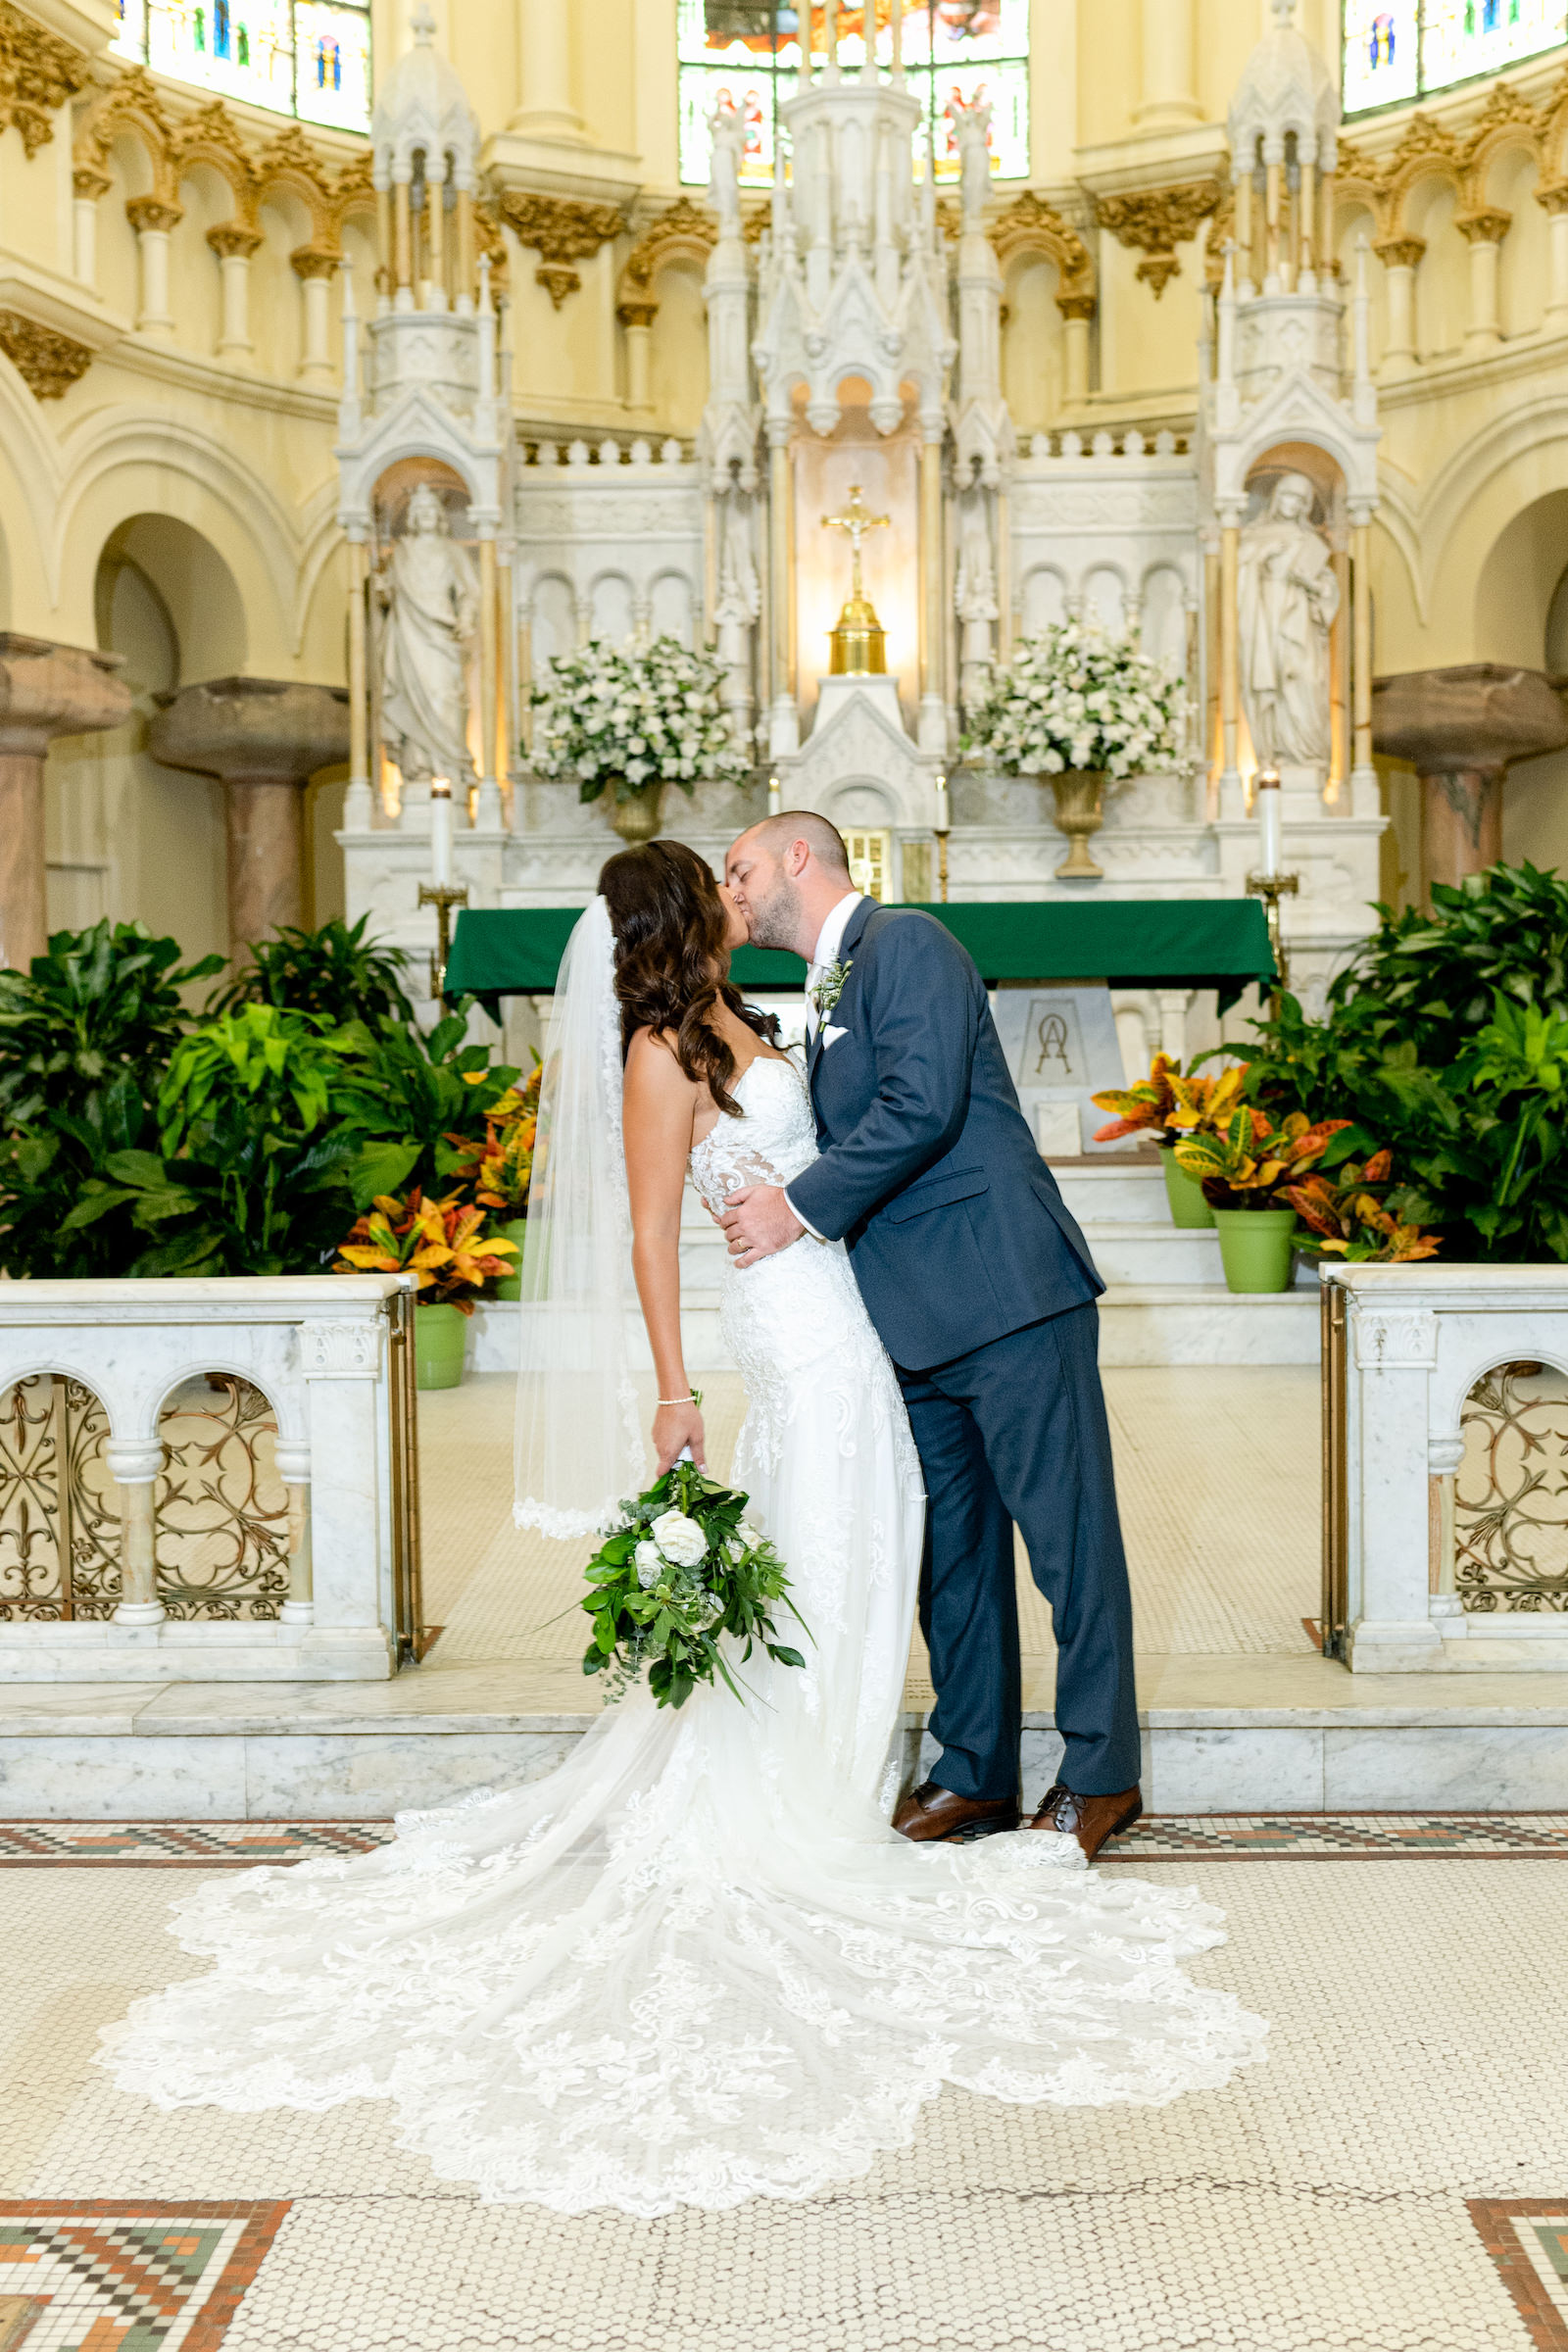 Bride and Groom Portrait at Sacred Heart Catholic Church | Lace Strapless Sweetheart Scalloped Edge Train Wedding Dress Bridal Gown | Groom Wearing Classic Navy Suit | Dewitt for Love Photography